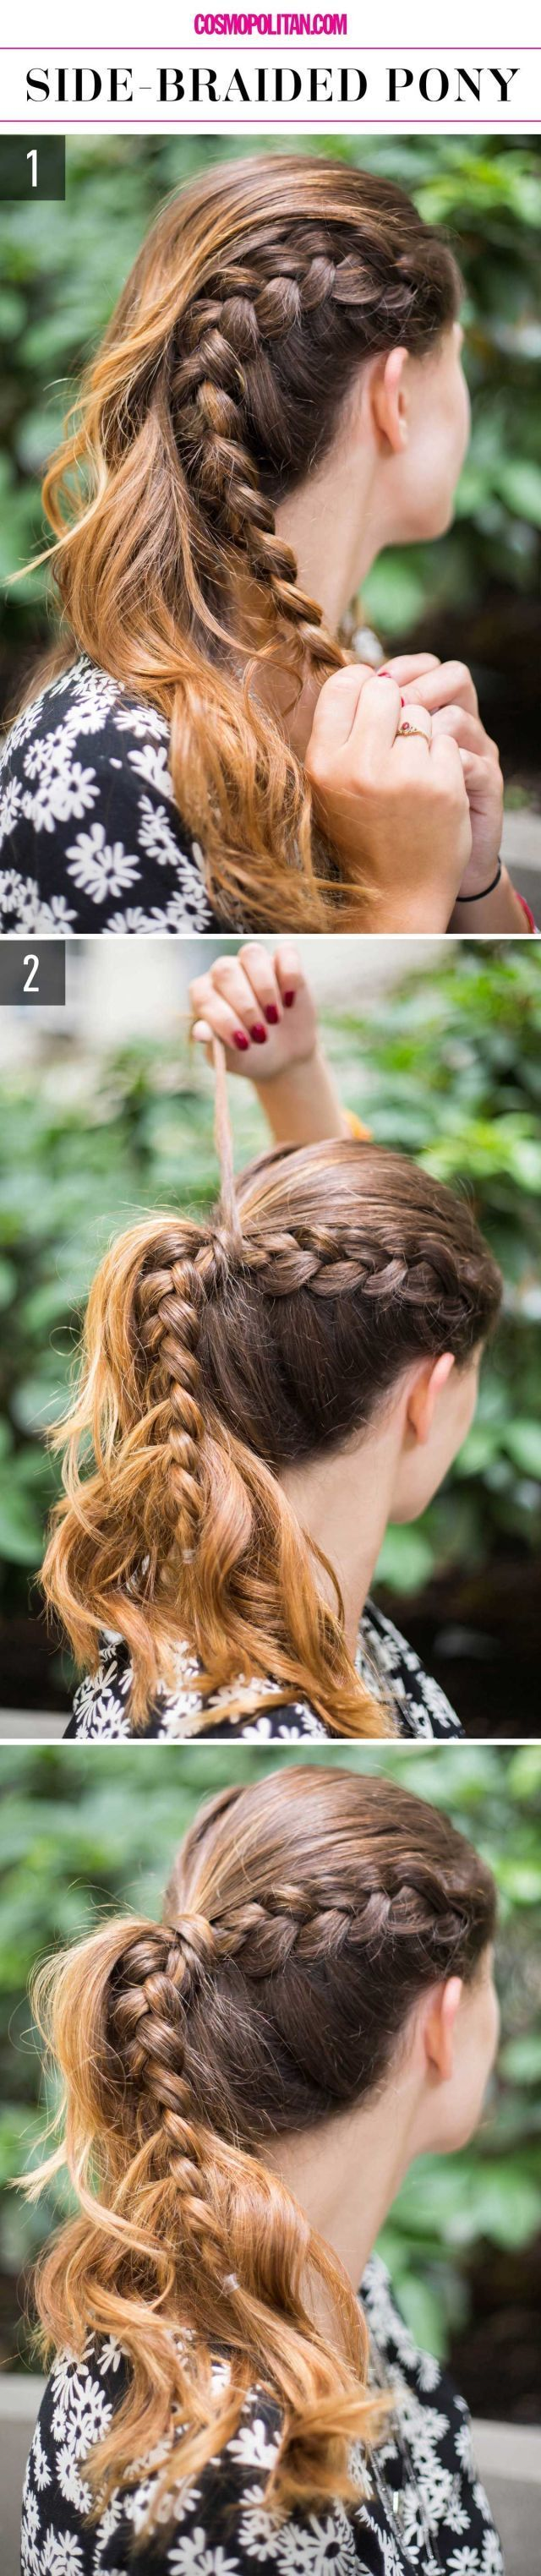 supereasy hairstyles for lazy girls who canut even tease hair